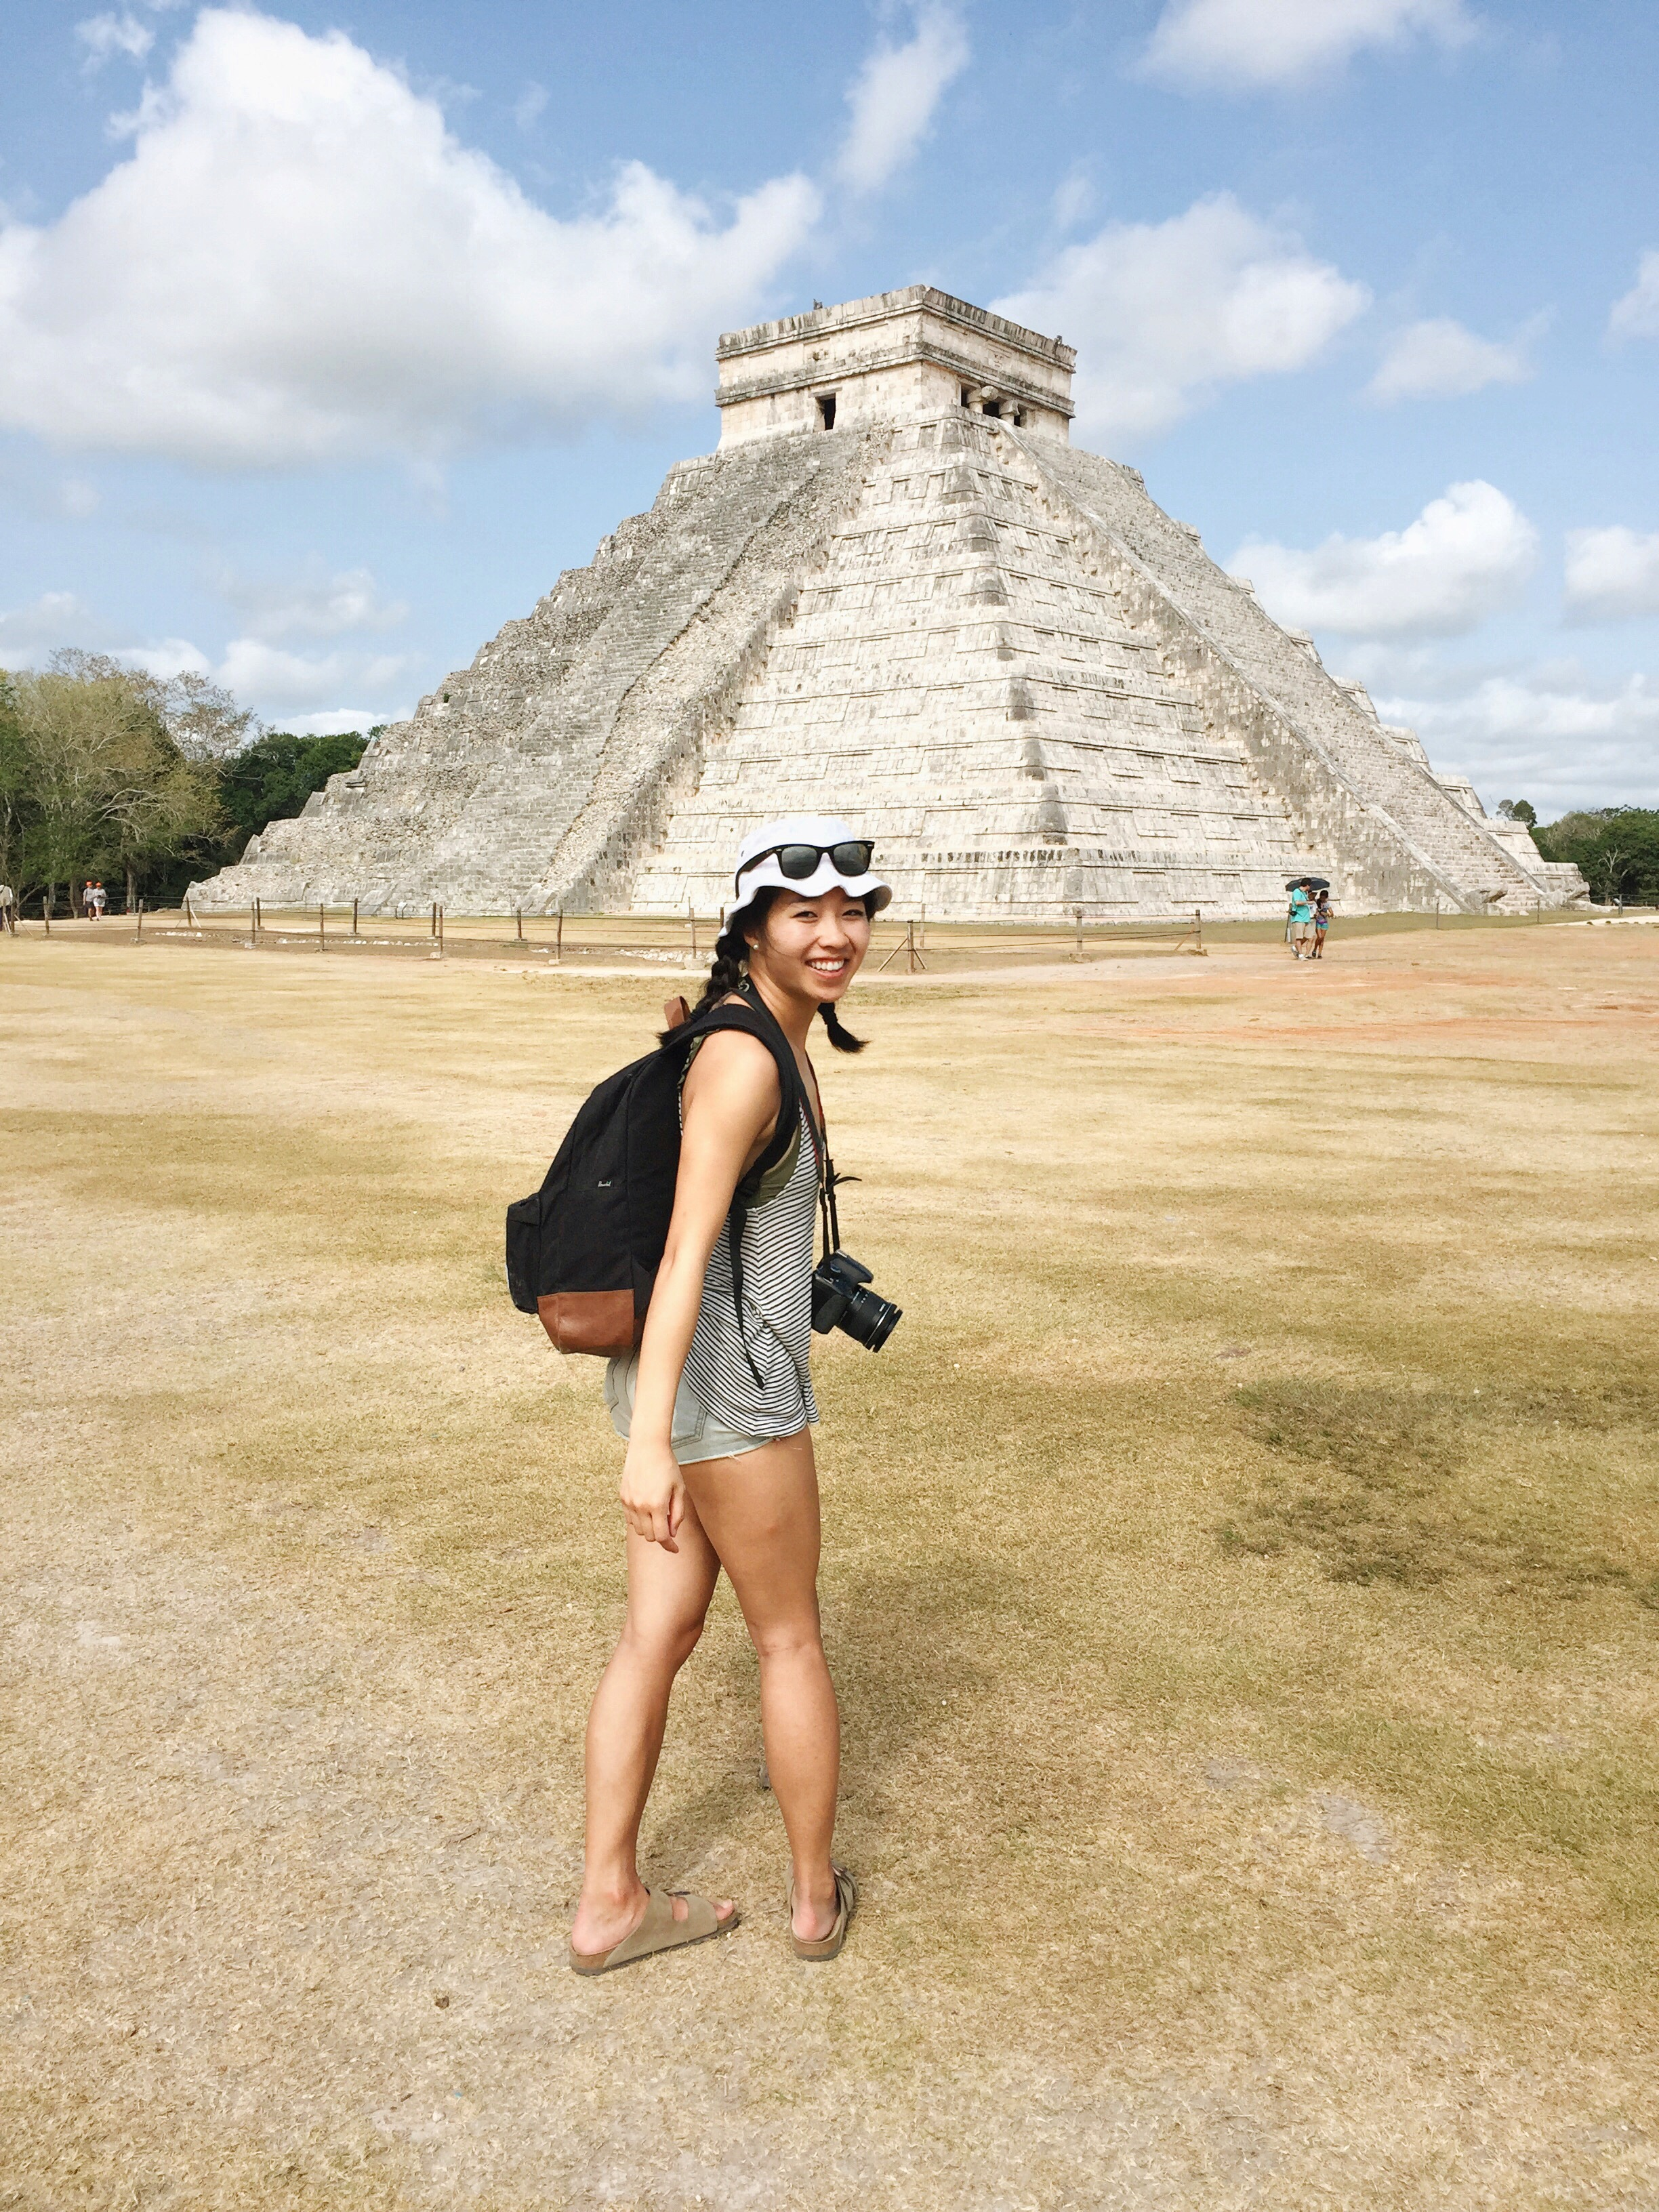 Pictured: Natalie visiting the Chichen Itza ruins.